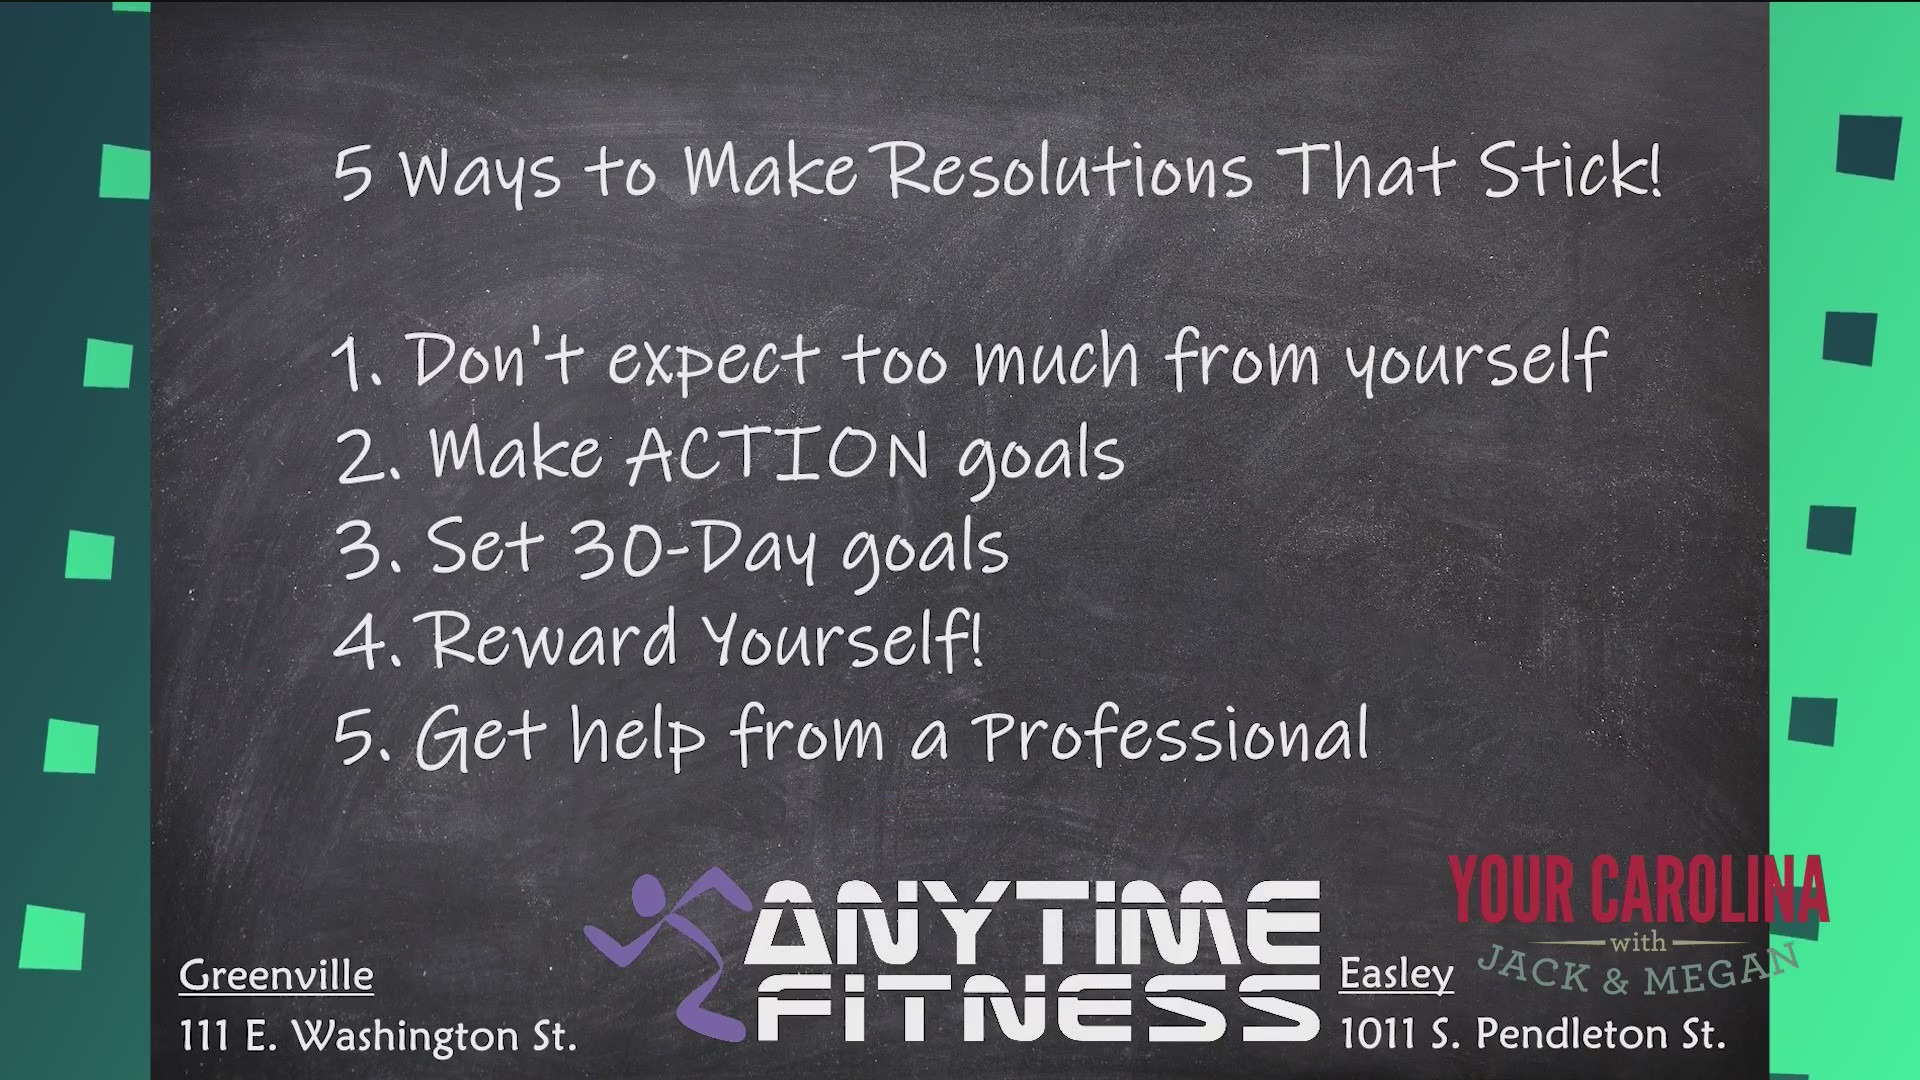 Move it Monday - 5 Ways To Stick To Your Resolutions